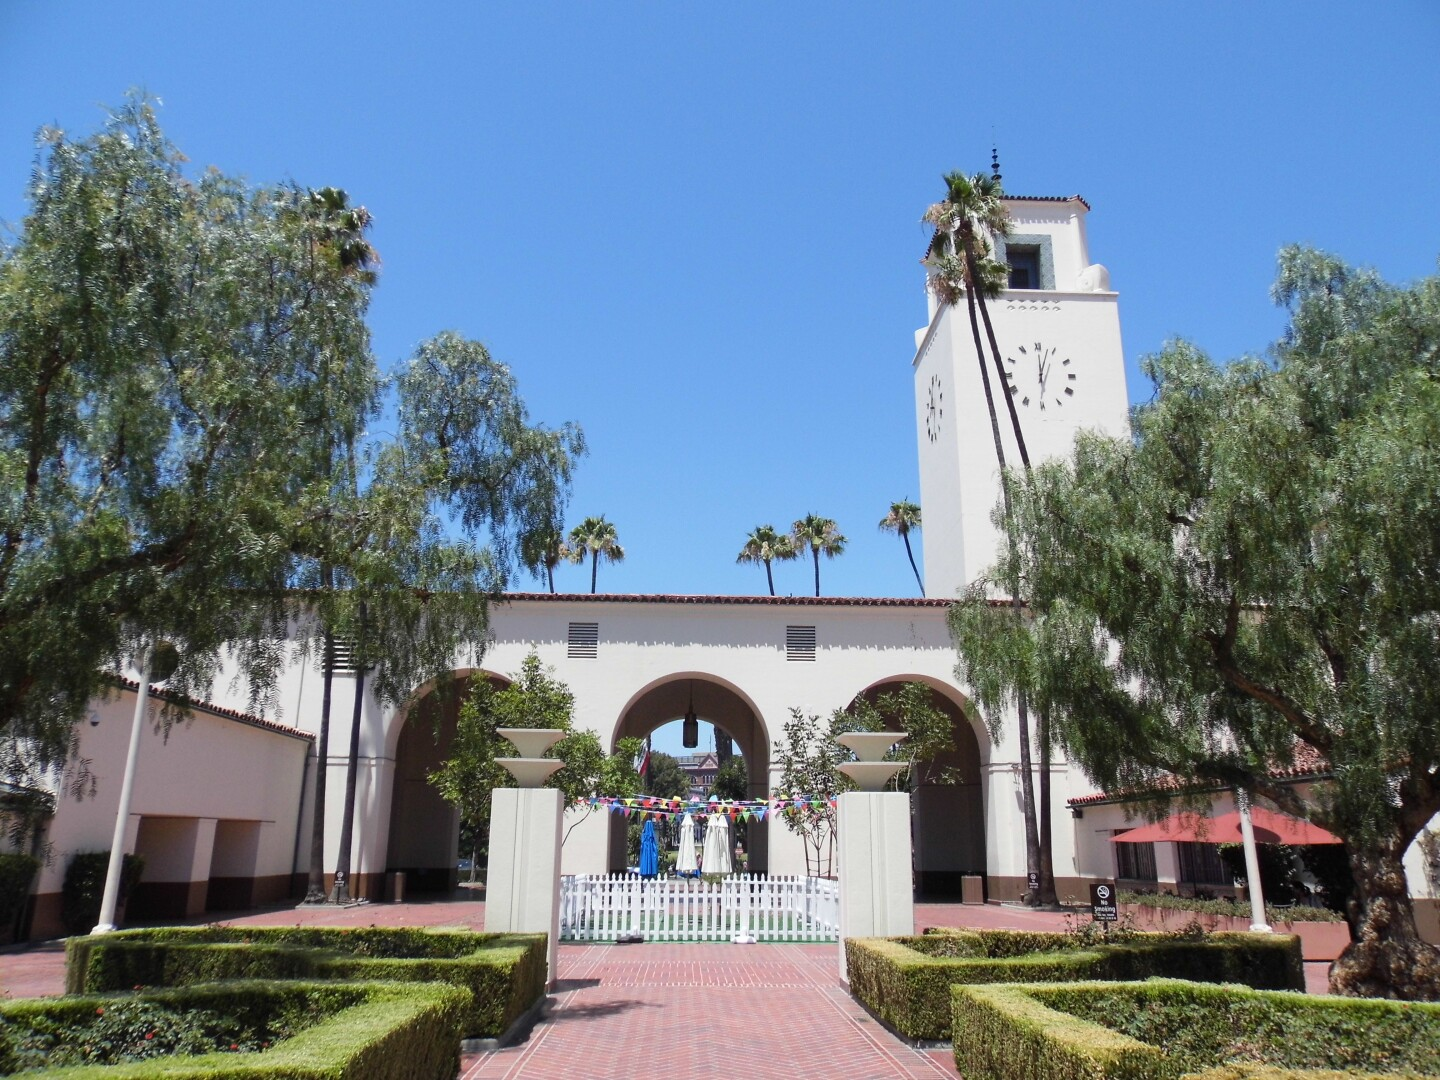 The Los Angeles Union Station square during the day.